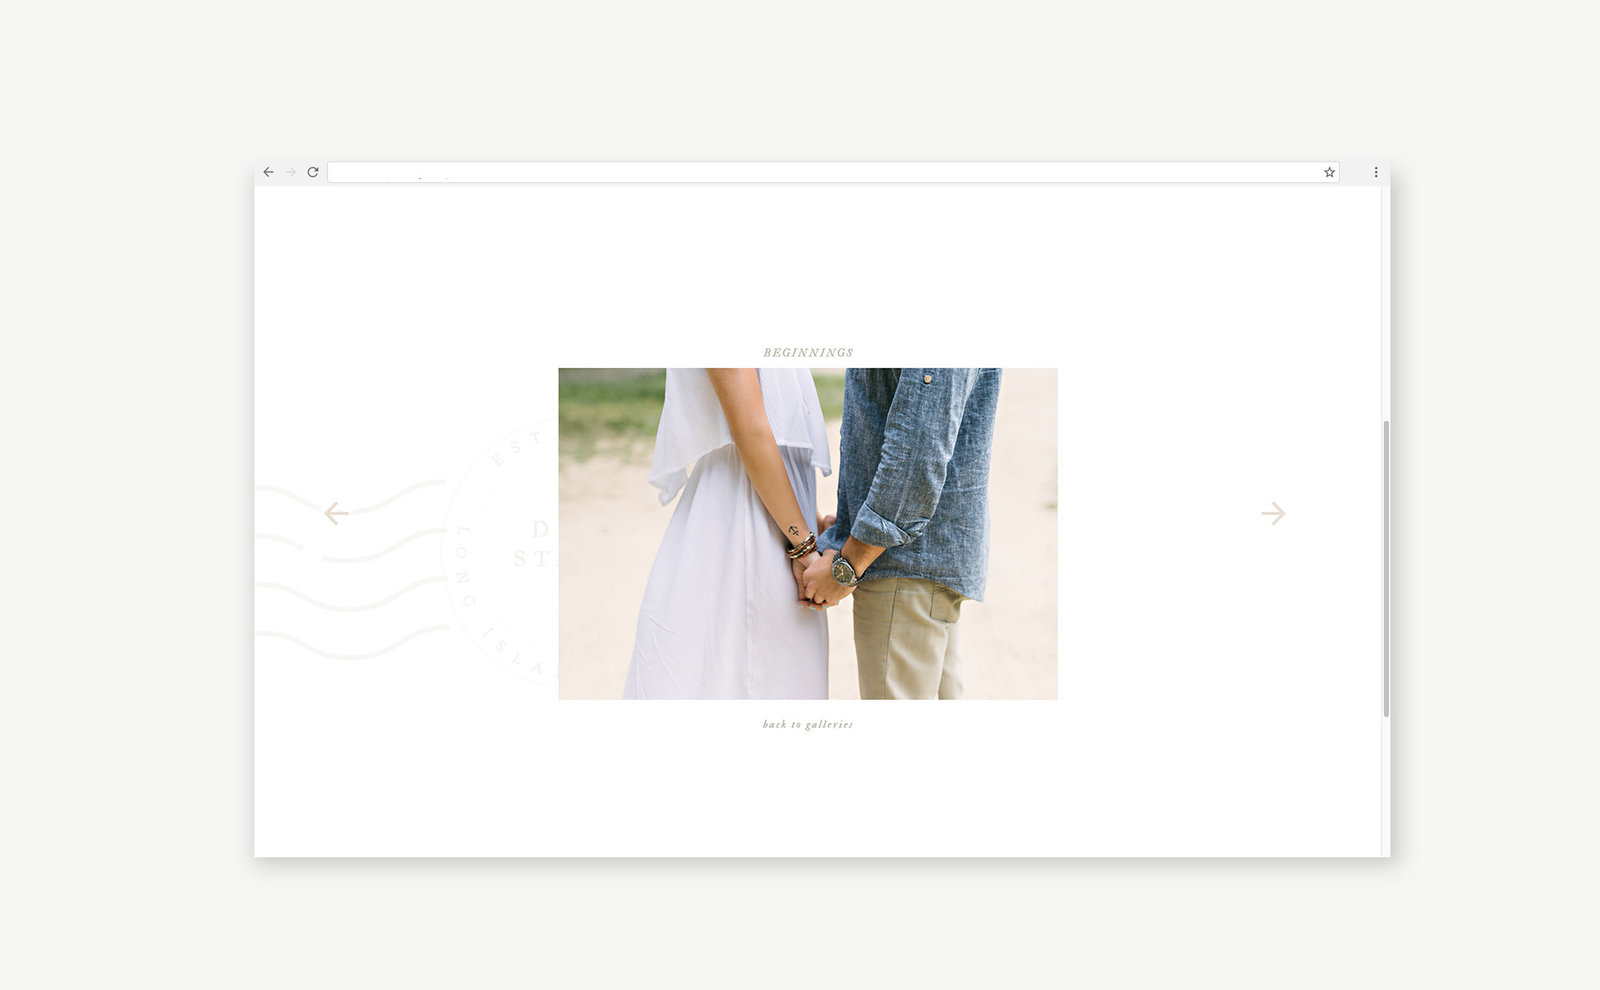 branding-for-photographers-web-design-dear-stacey-05